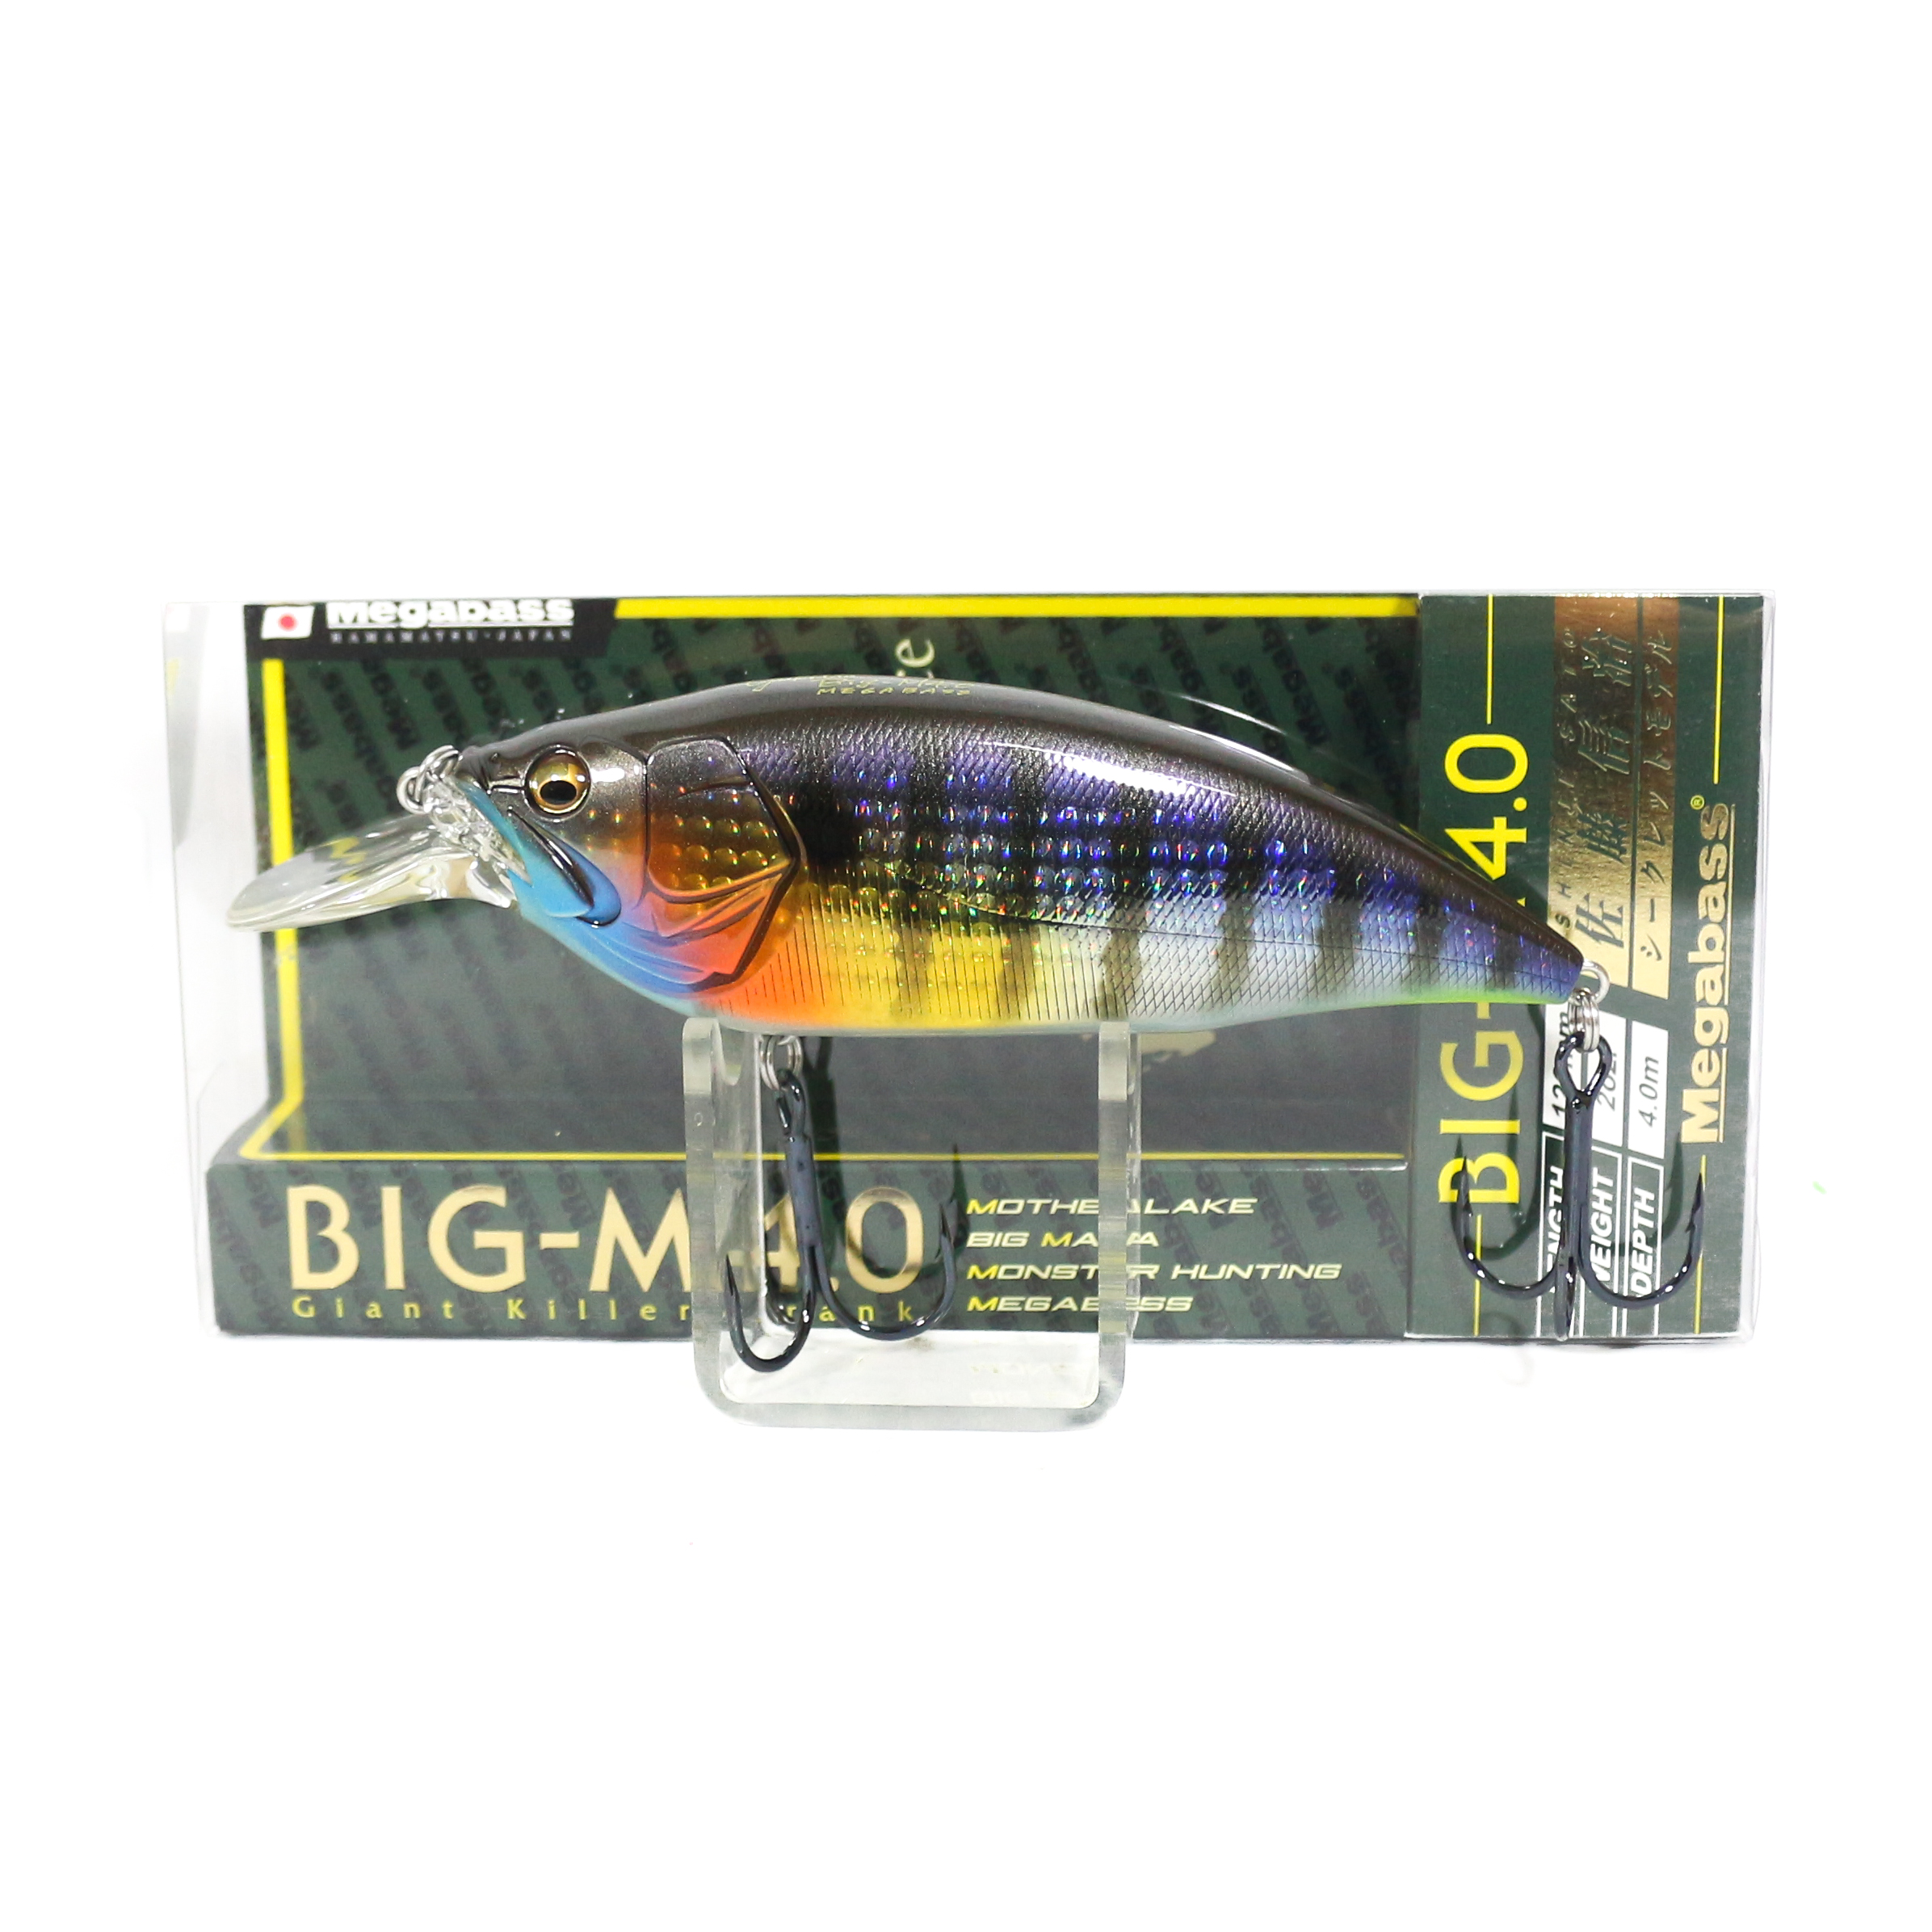 Megabass Big M 4.0 Giant Crank 126 mm Floating Lure GG Wild Gill BM (3181)